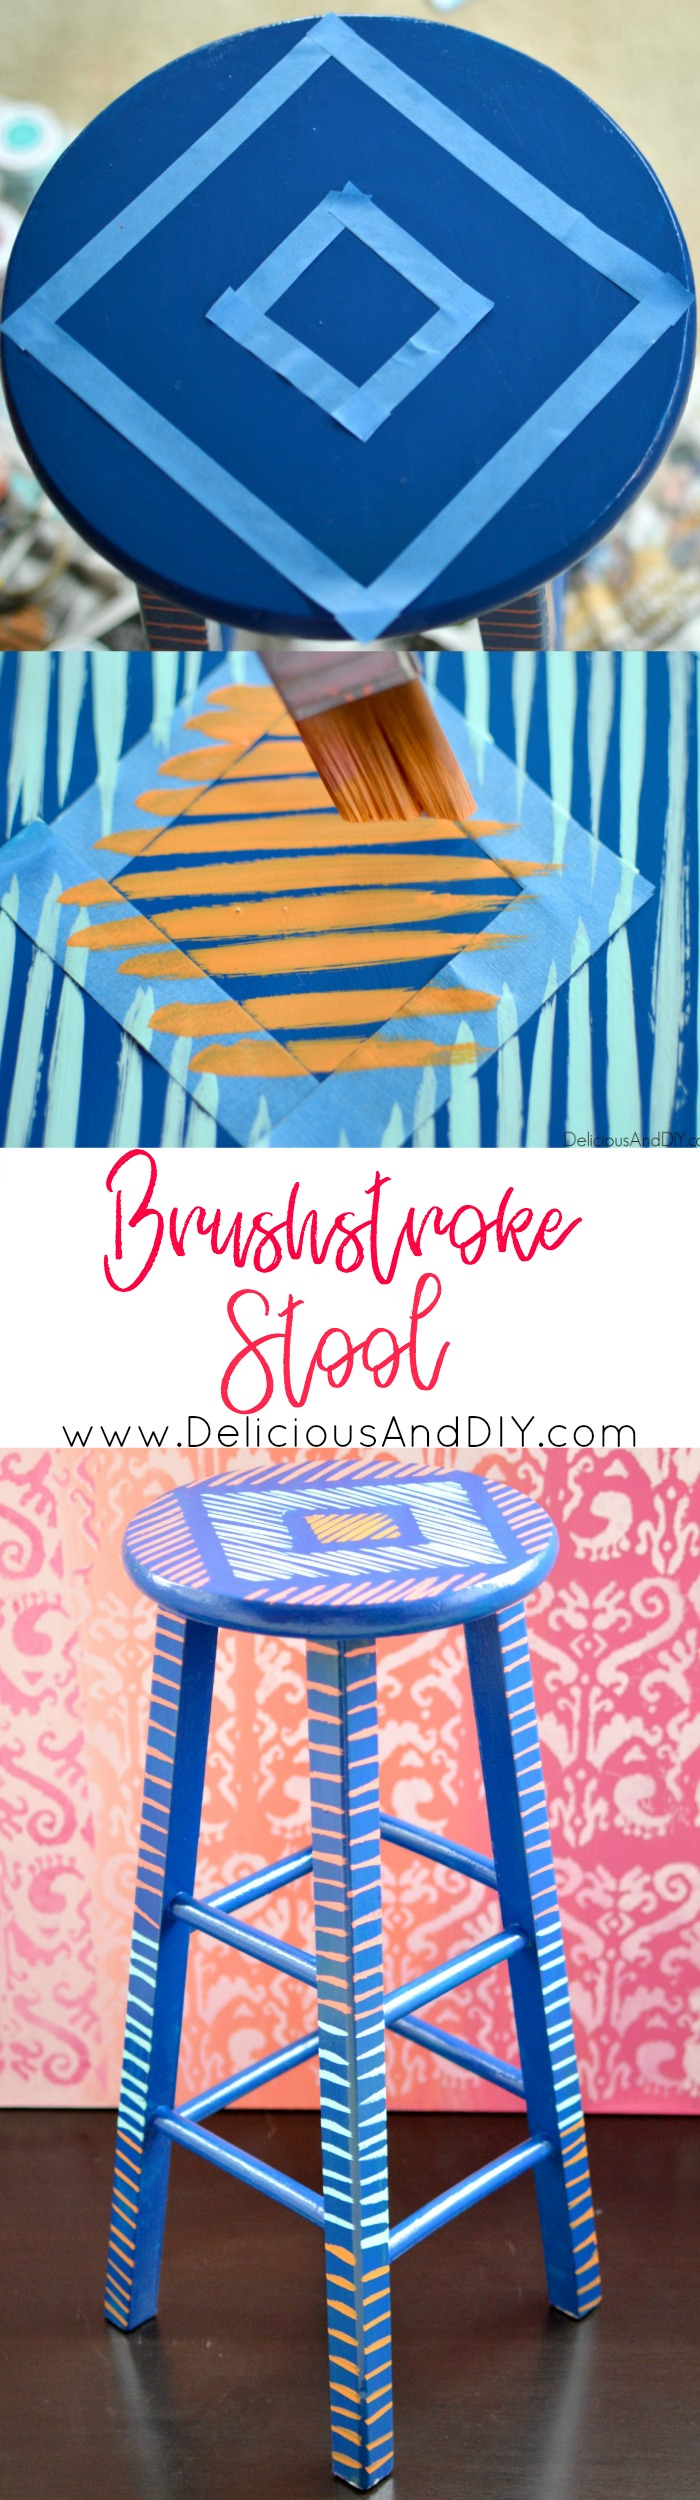 Create a gorgeous Brushstroke pattern on an old stool and give it a funky makeover| Masking Tape Projects| Upcycled Furniture| Repurposed Furniture| Stool Makeover Ideas| Colorful Furniture| Home Decor| Painted Furniture